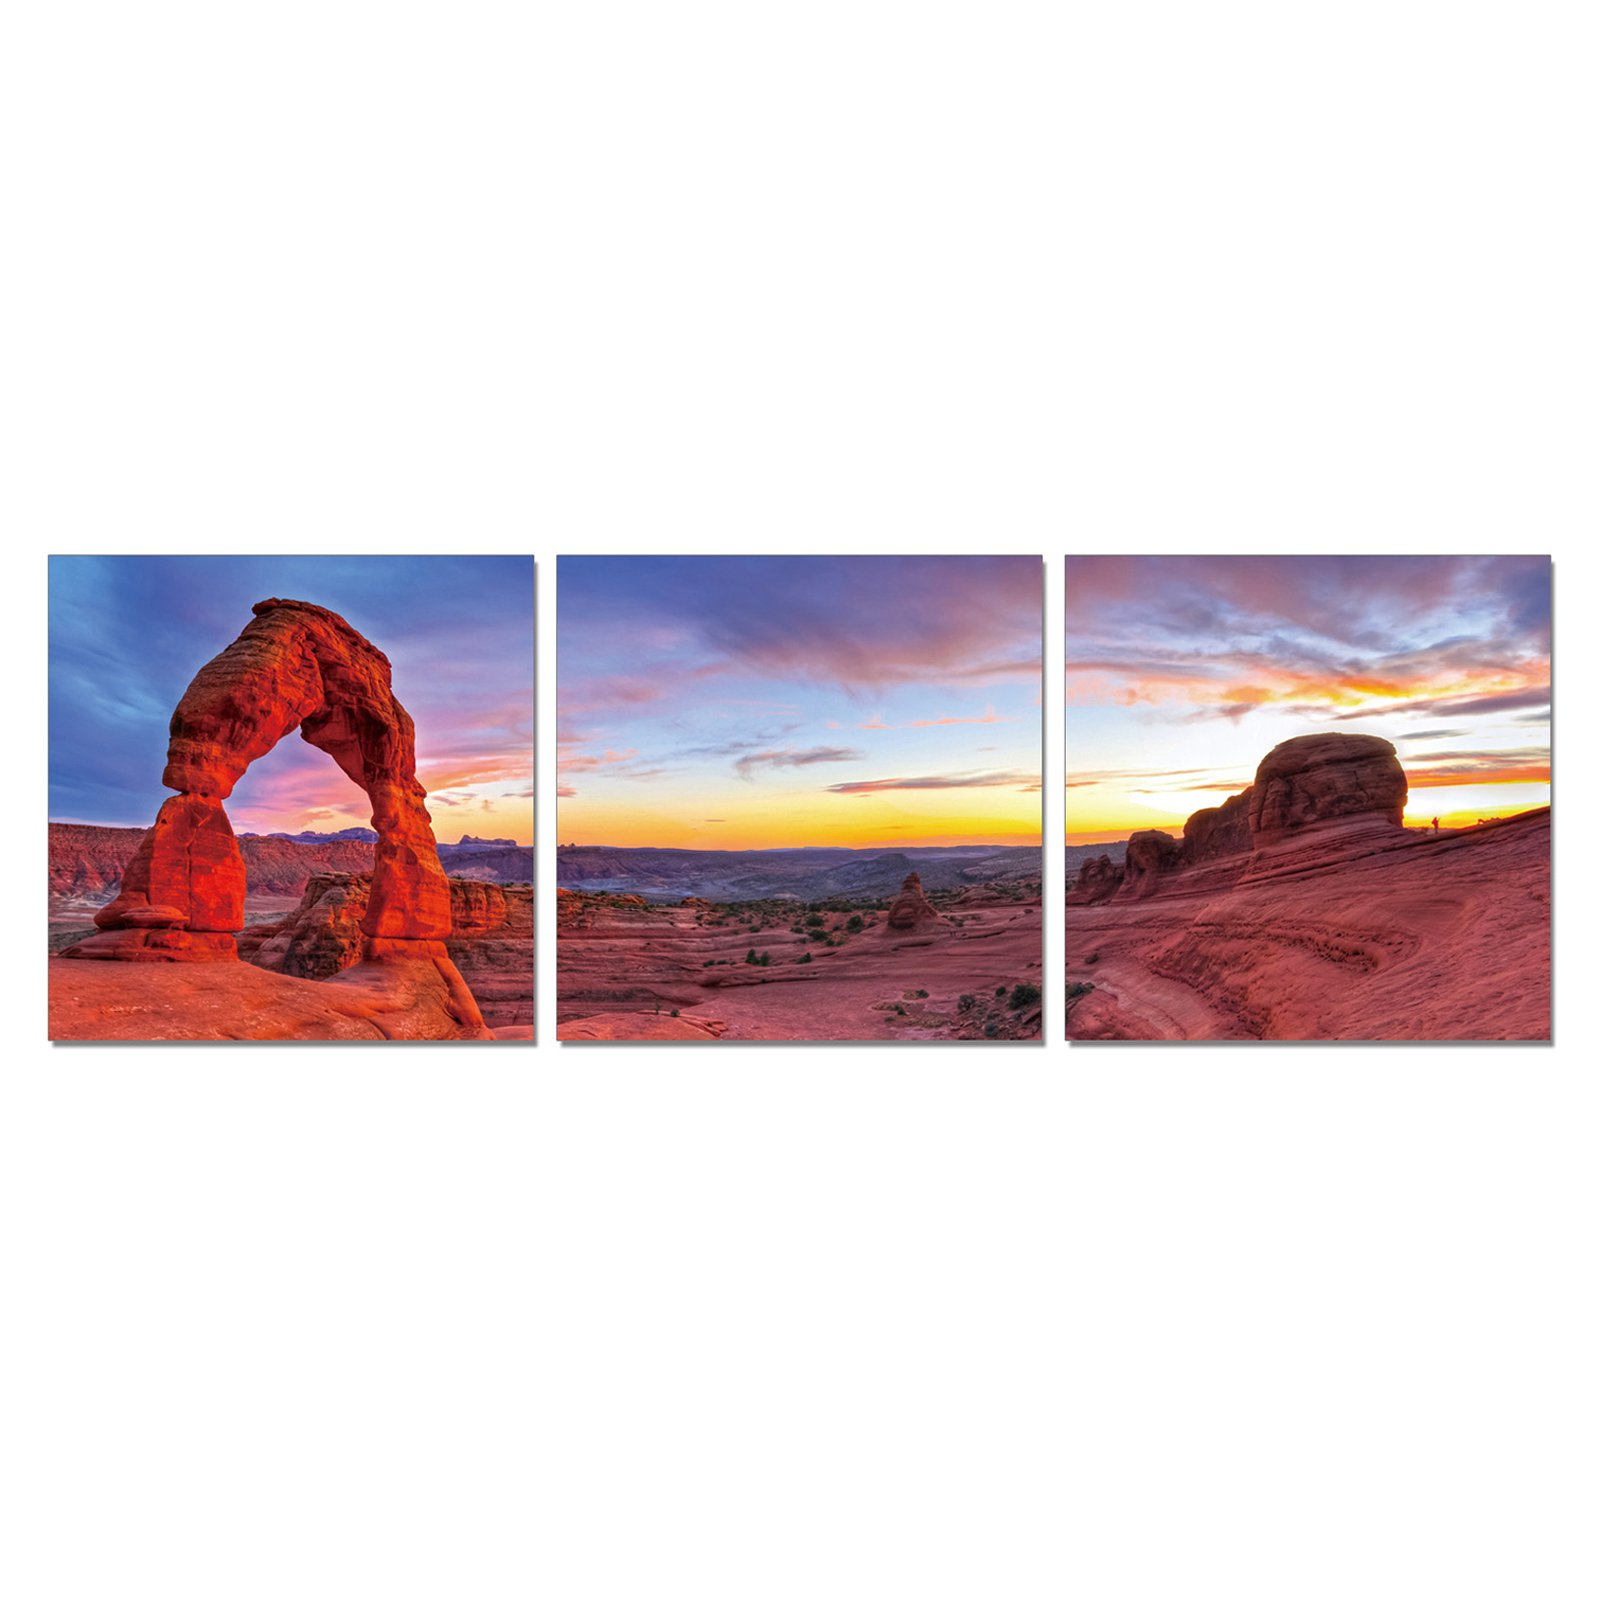 Furinno SeniA Delicate Arch 3-Panel MDF Framed Photography Triptych Print, 48 x 16-in